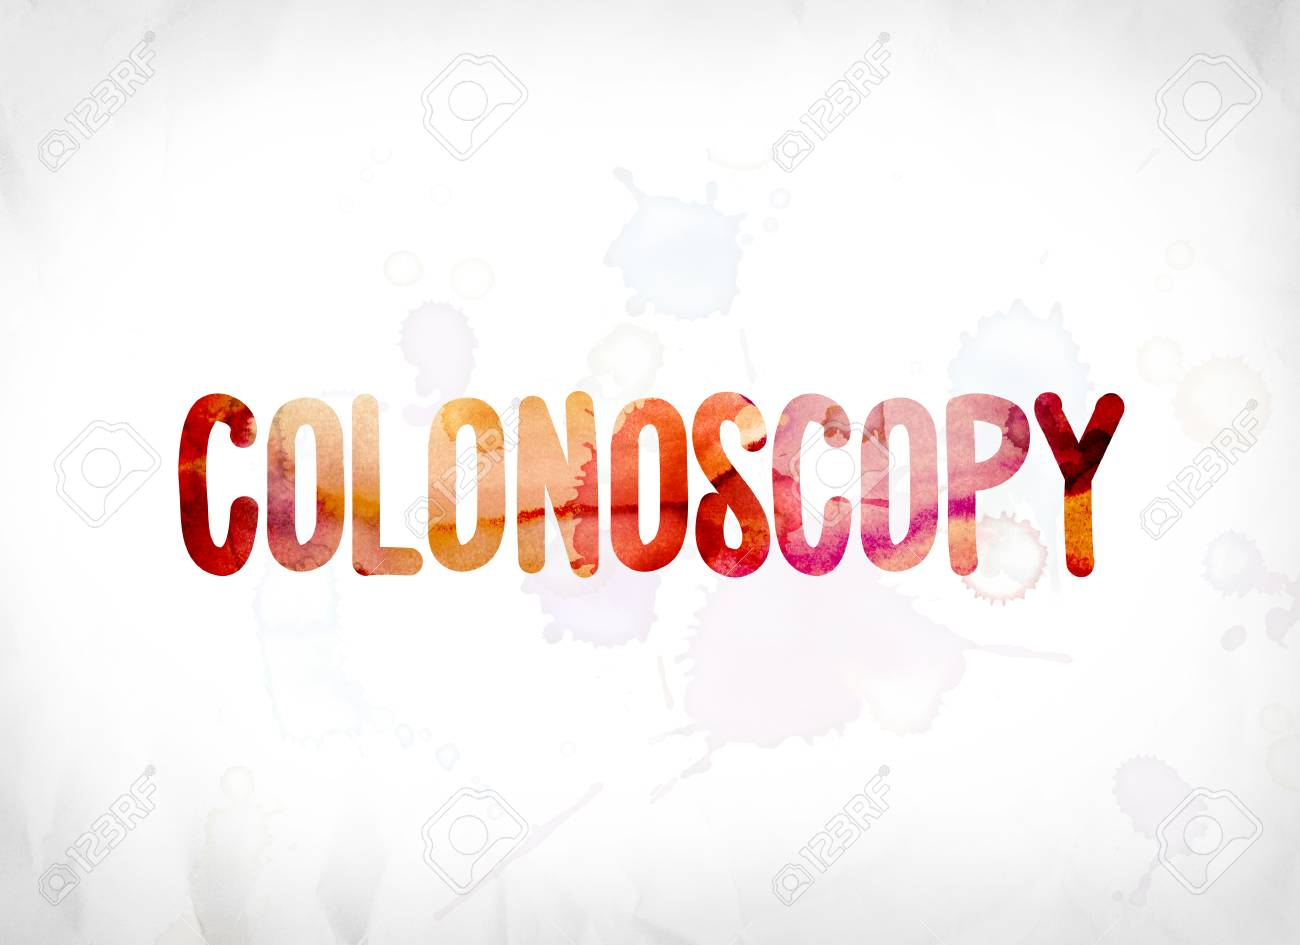 Image result for colonoscopy the word